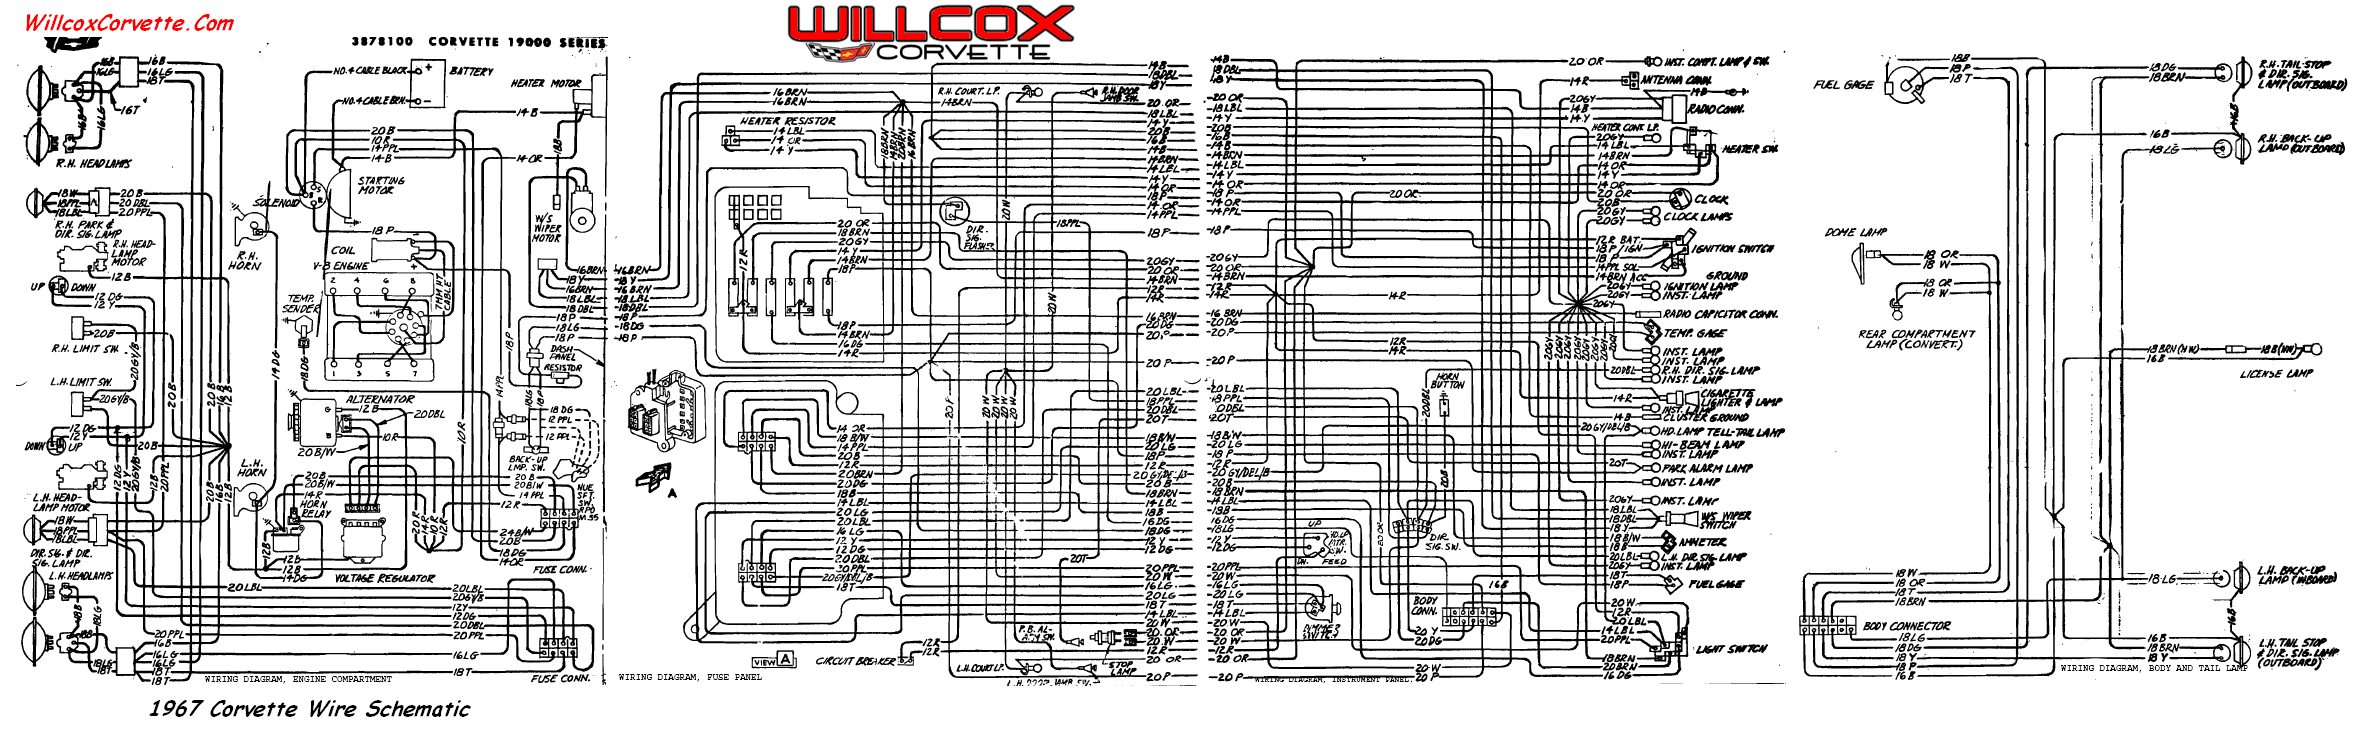 67 vette wiring diagram anything wiring diagrams u2022 rh flowhq co 83 Corvette Wiring Schematic 1984 Corvette Wiring Schematic